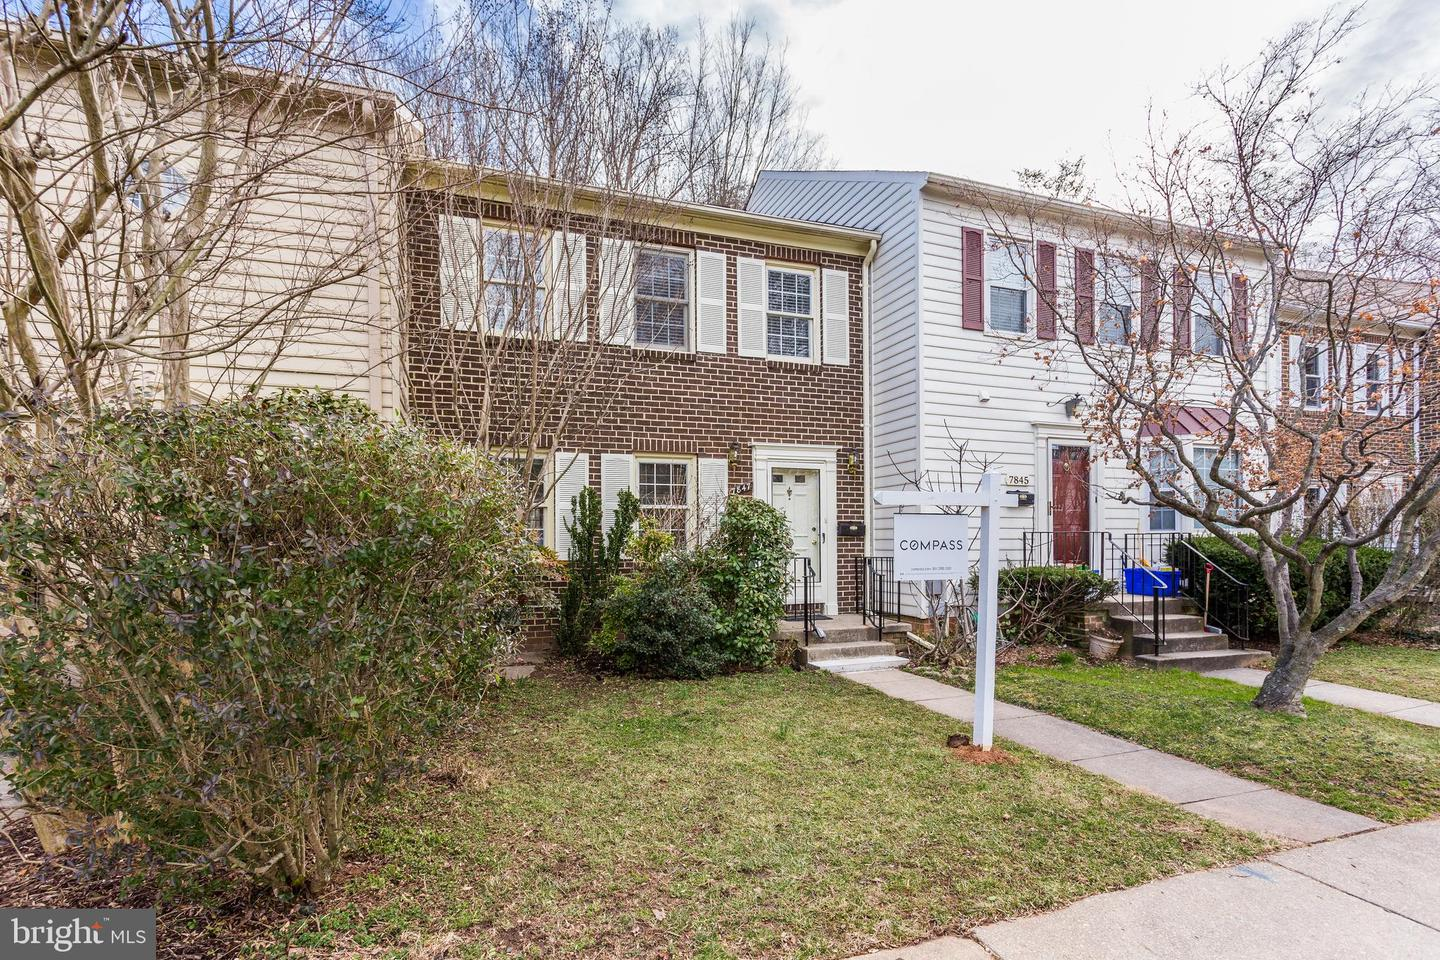 7847 HEATHERTON LANE, POTOMAC, Maryland